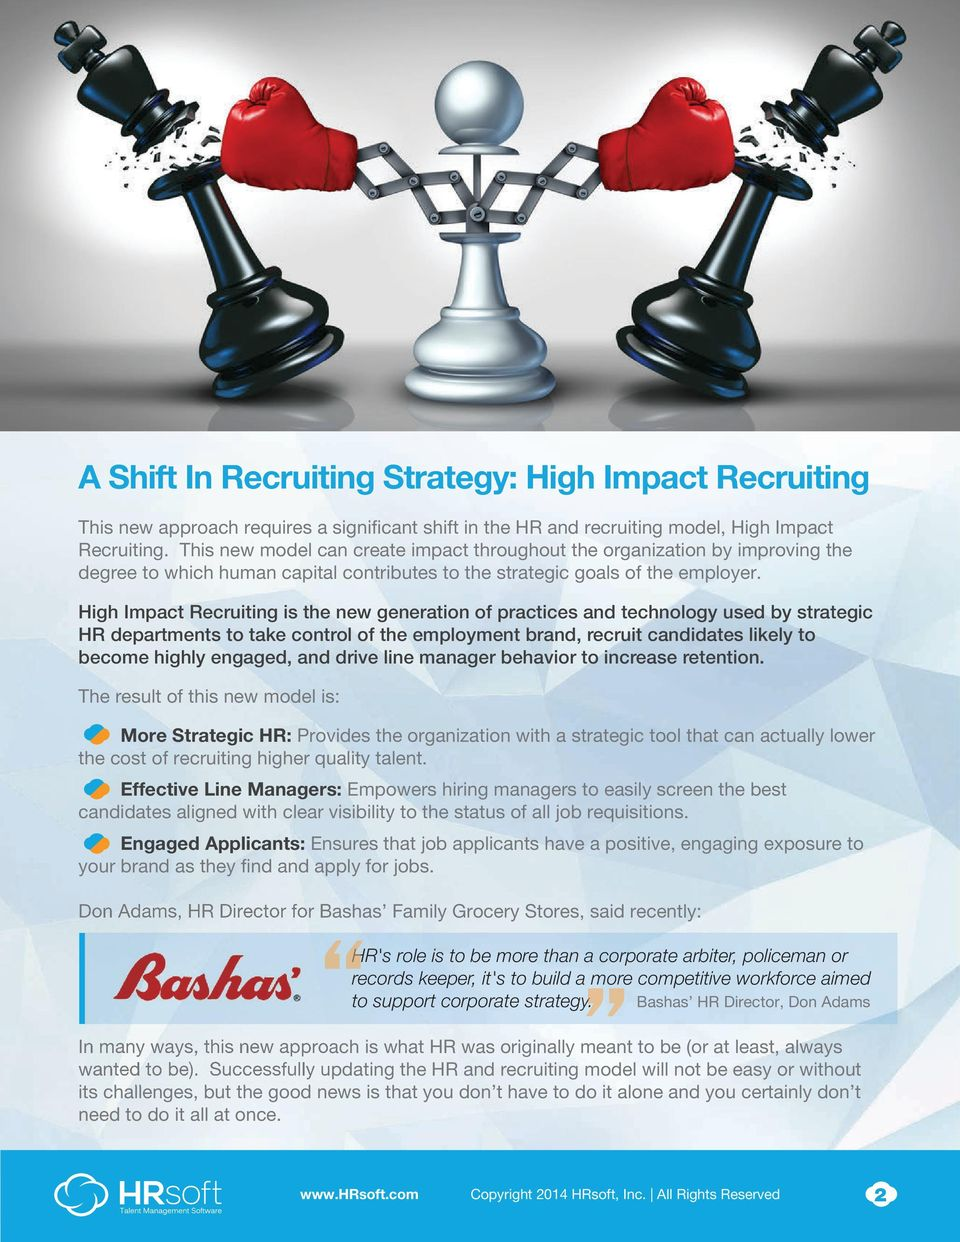 High Impact Recruiting is the new generation of practices and technology used by strategic HR departments to take control of the employment brand, recruit candidates likely to become highly engaged,